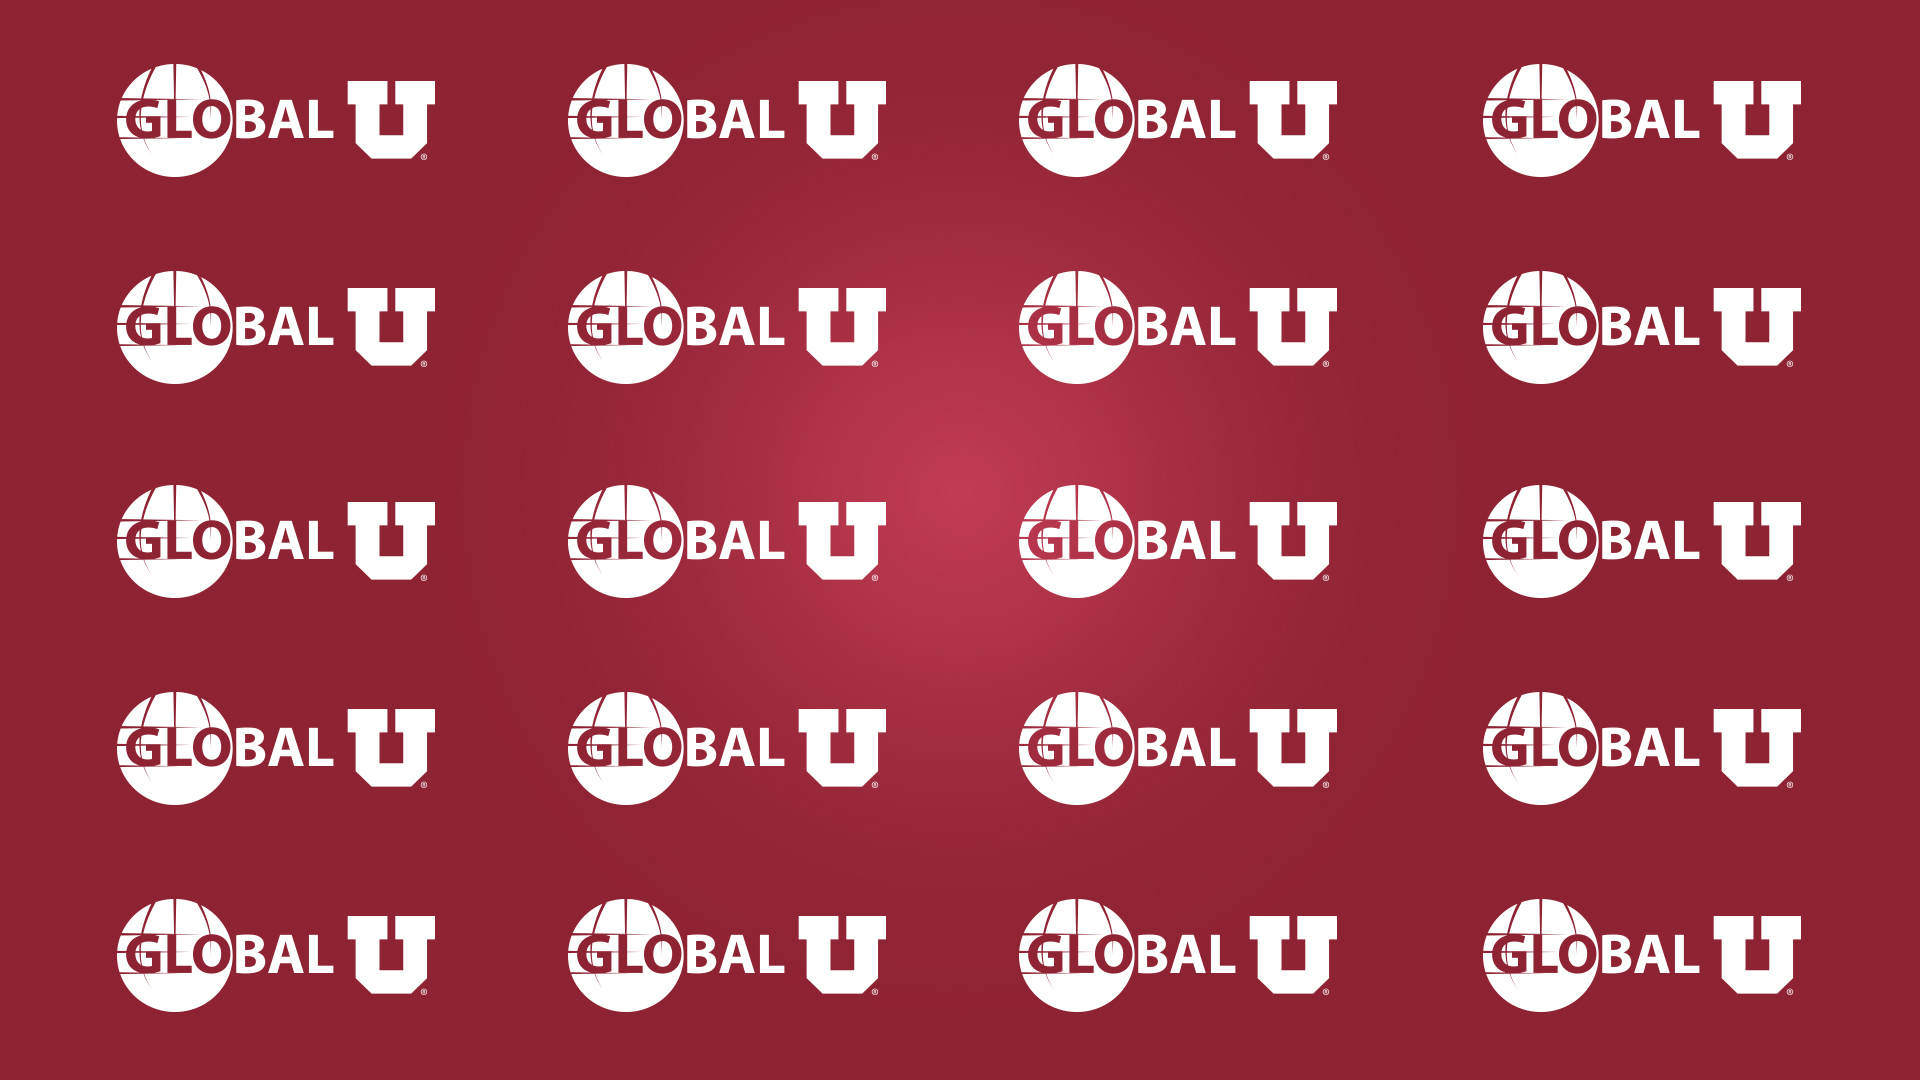 Global U logo zoom background